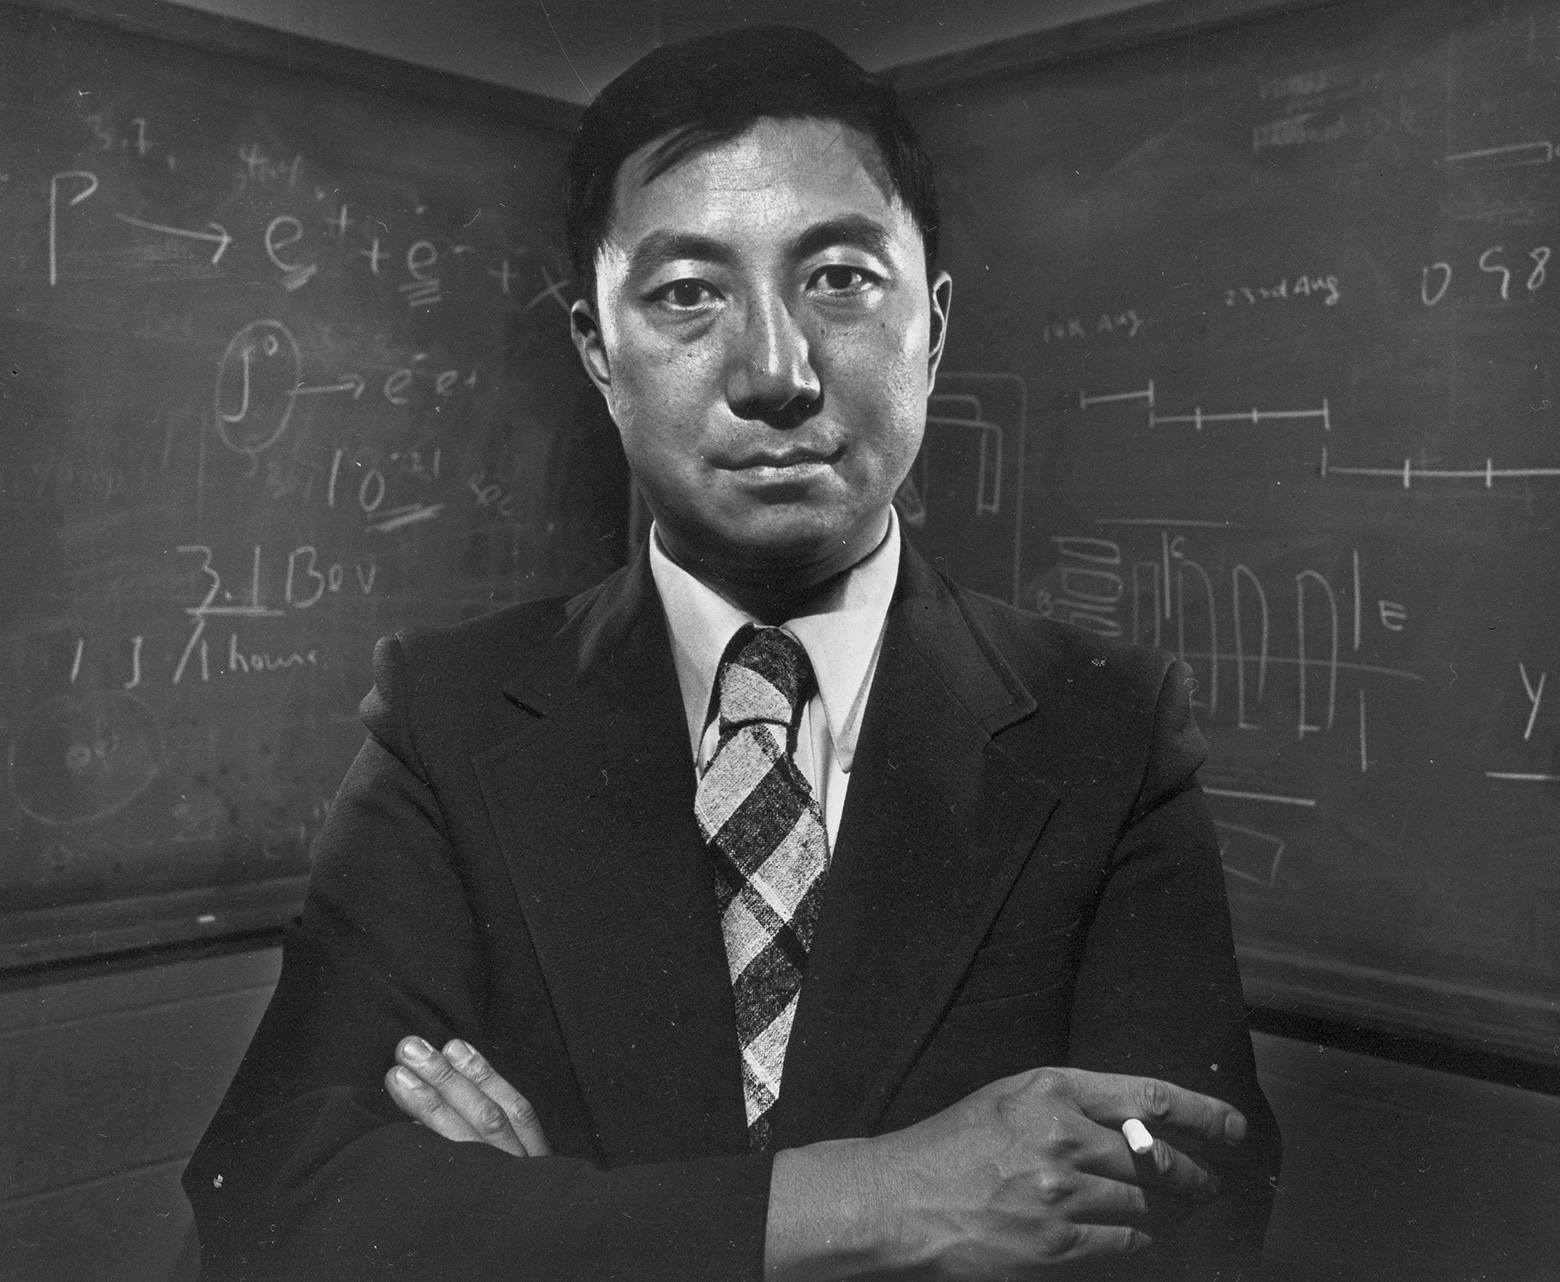 Samuel Chao Chung Ting is shown at Massachusetts Institute of Technology on Nov. 1, 1976. Ting, a longtime MIT professor, was co-winner of the Nobel Prize for physics in that year. (Photo: AP Photo. Previous image: Image of matter distribution in the universe from the Millennium Simulation Project, Max Planck Institute for Astrophysics.)